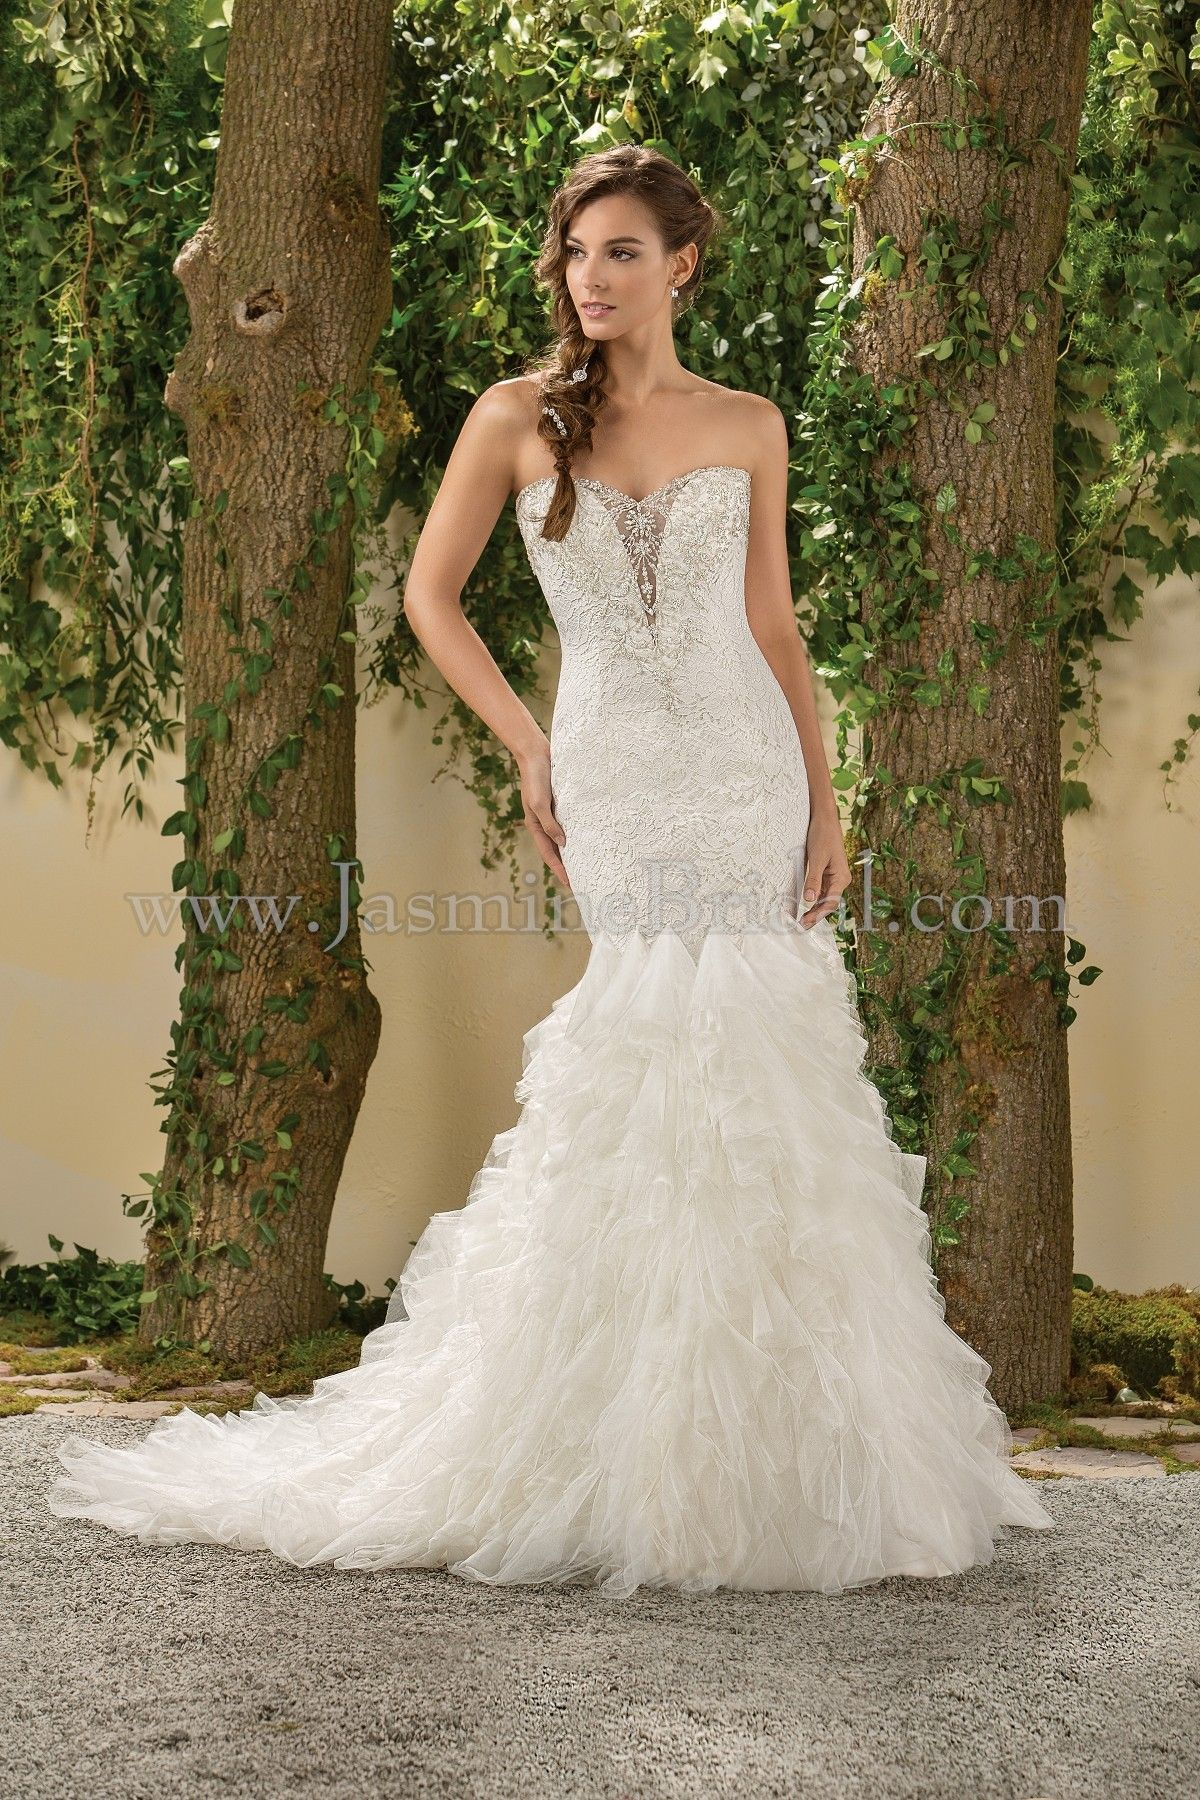 Jasmine bridal collection style f in ivory spring